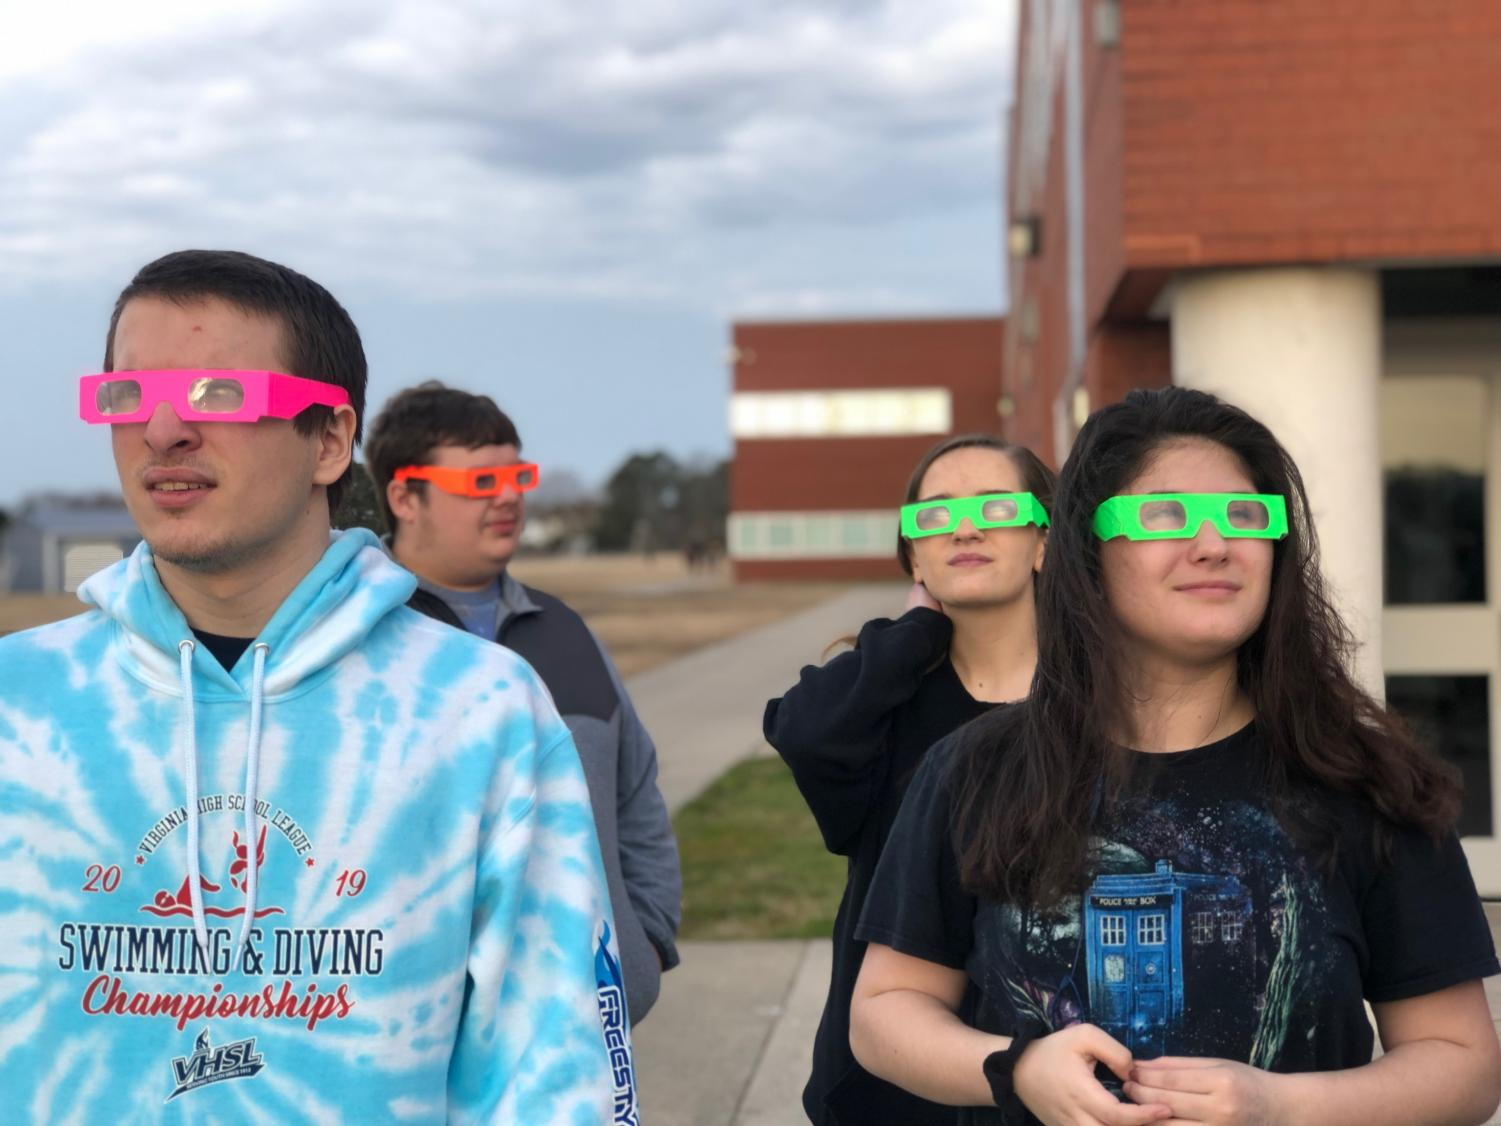 1B Astronomy students (from left to right) Devin Vensland, Noah Anderson, Sydney Lussier, and Sarah Hester look at the sky over the football field through prism glasses. Photo on March 15, 2019